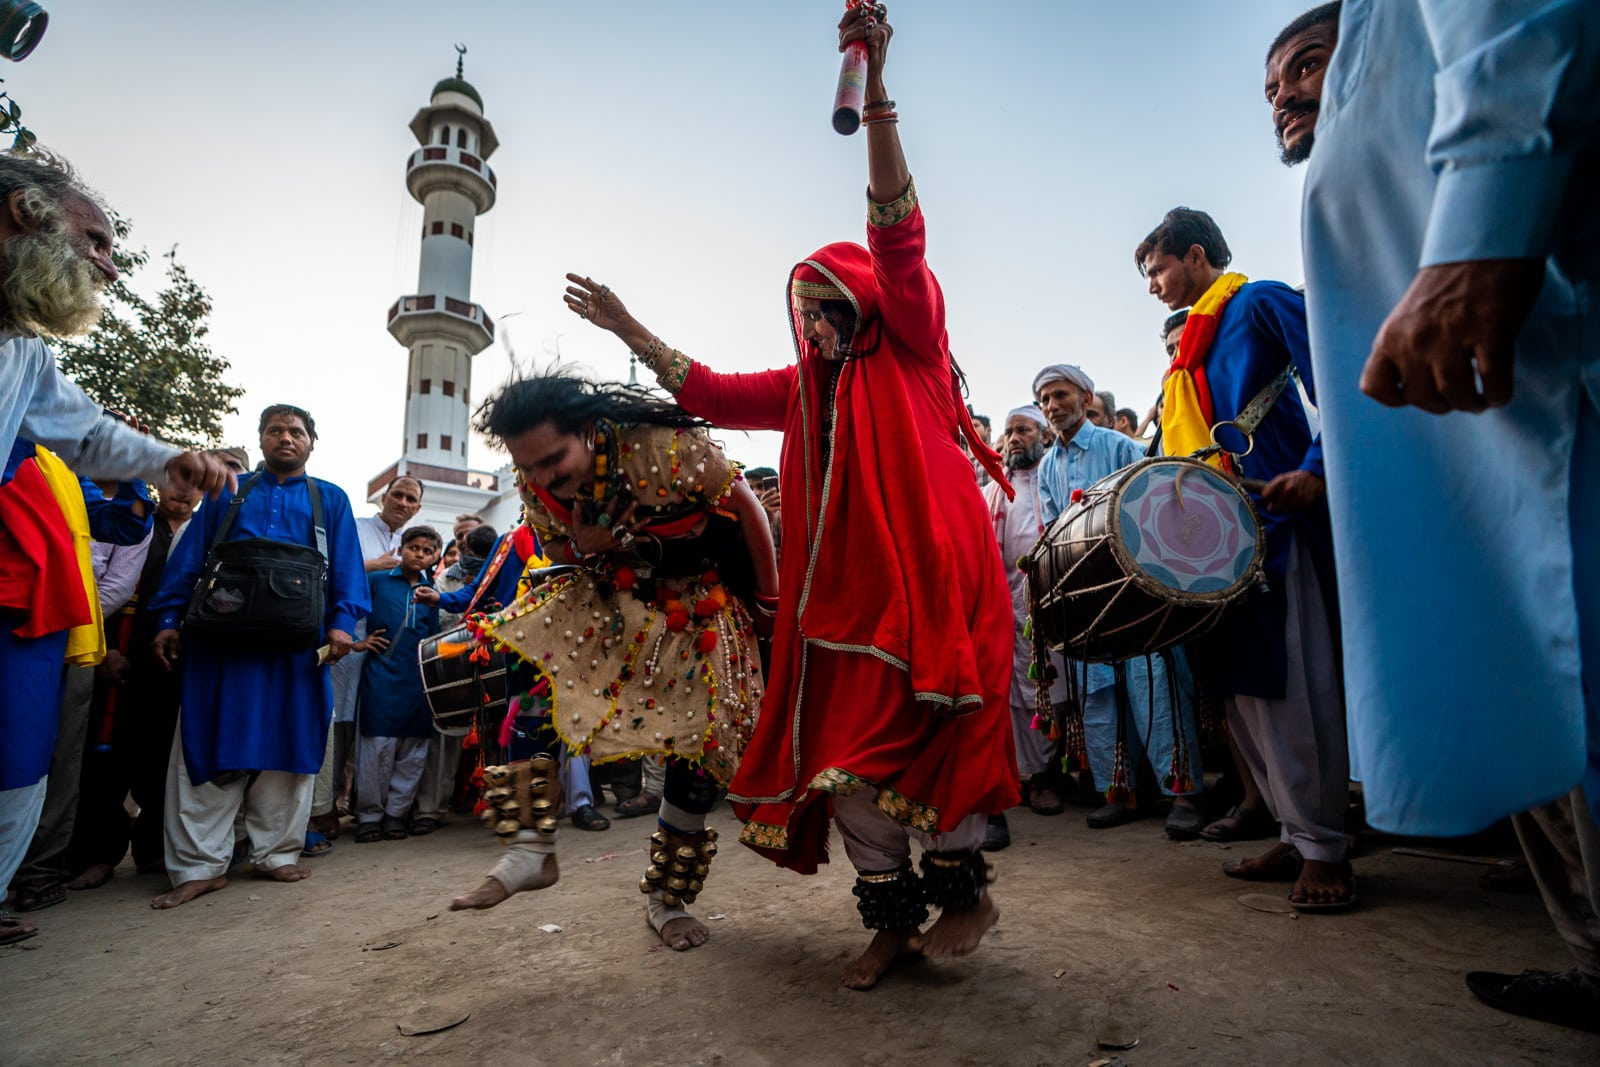 Female malang dancing dhamal in Lahore at the urs of Madhu lal Hussain